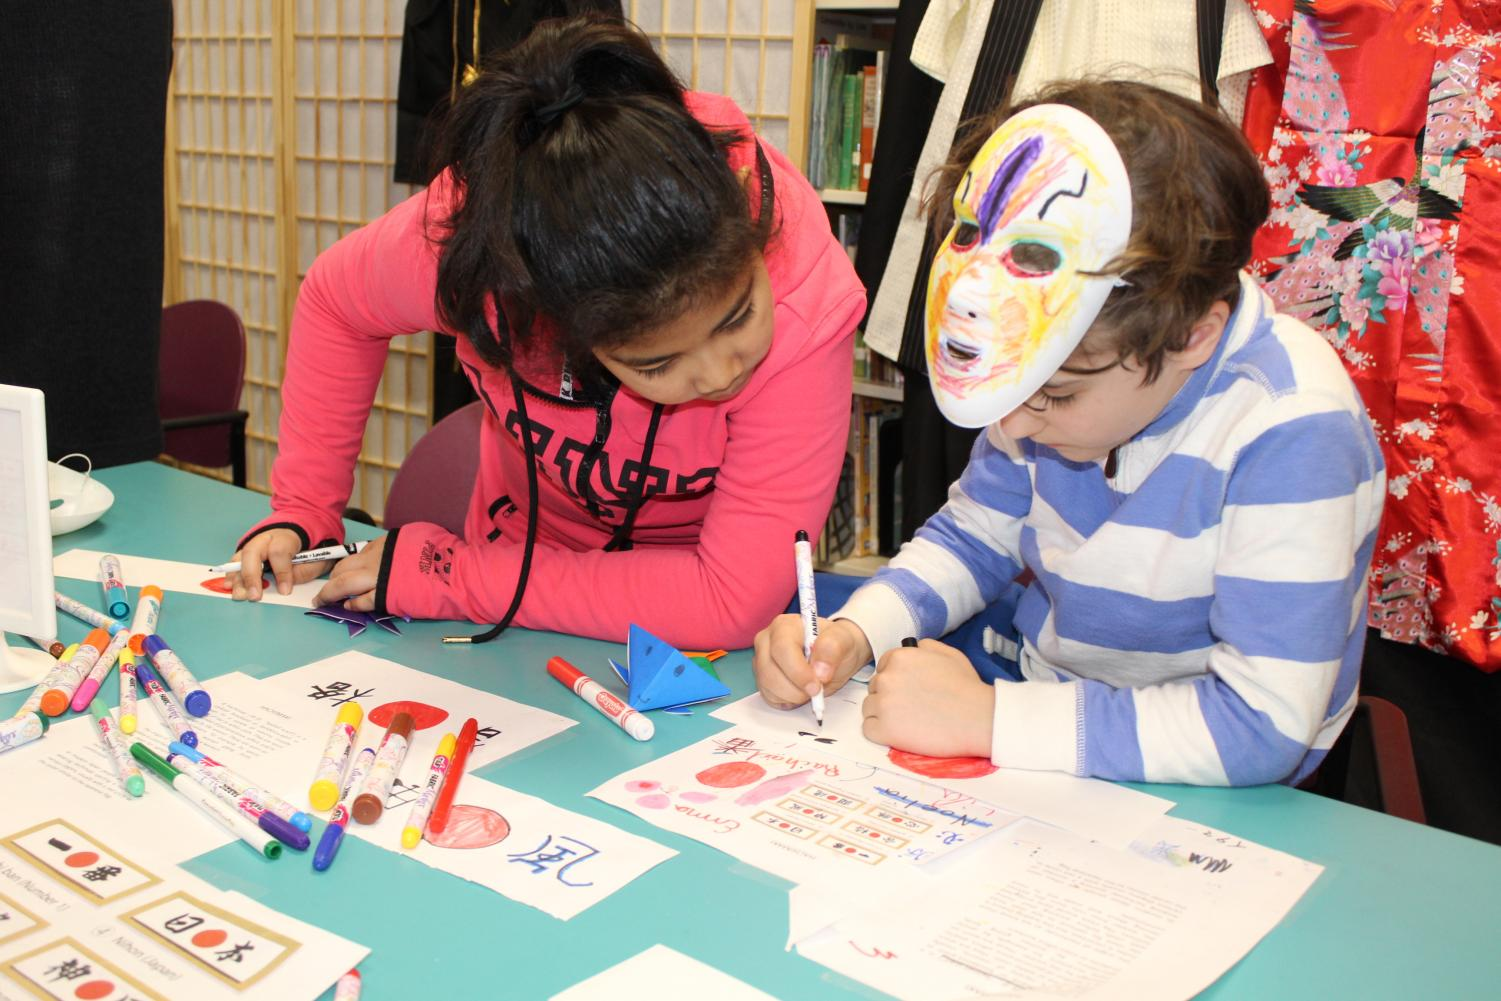 Manorhaven Elementary School students practice writing Japanese characters at a workshop